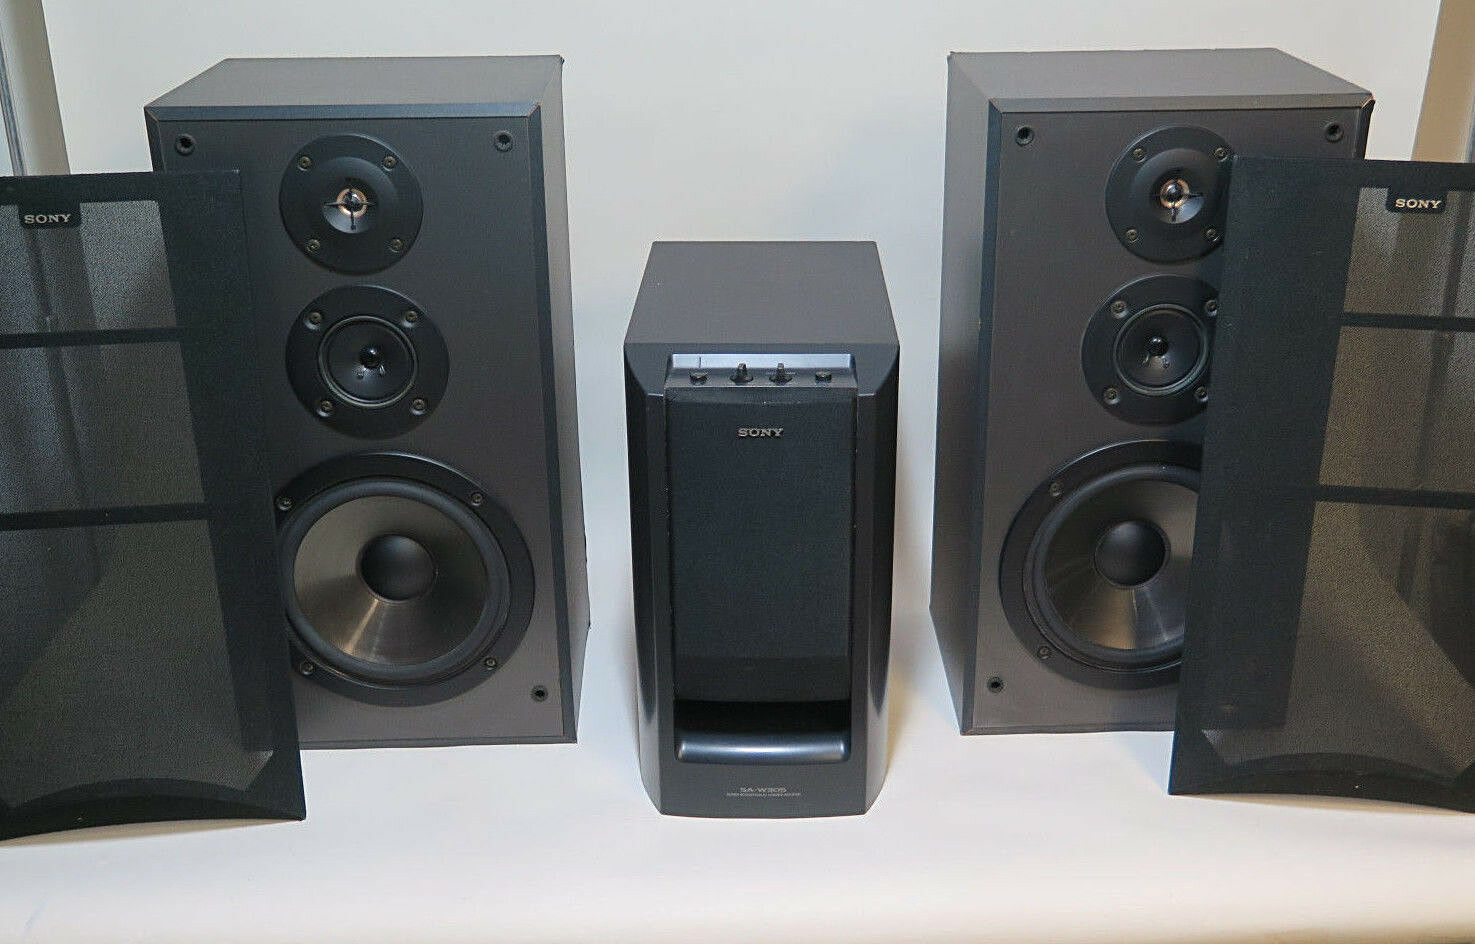 Sony SS-MB215 Surround Sound Speakers & Subwoofer. Buy it now for 175.00